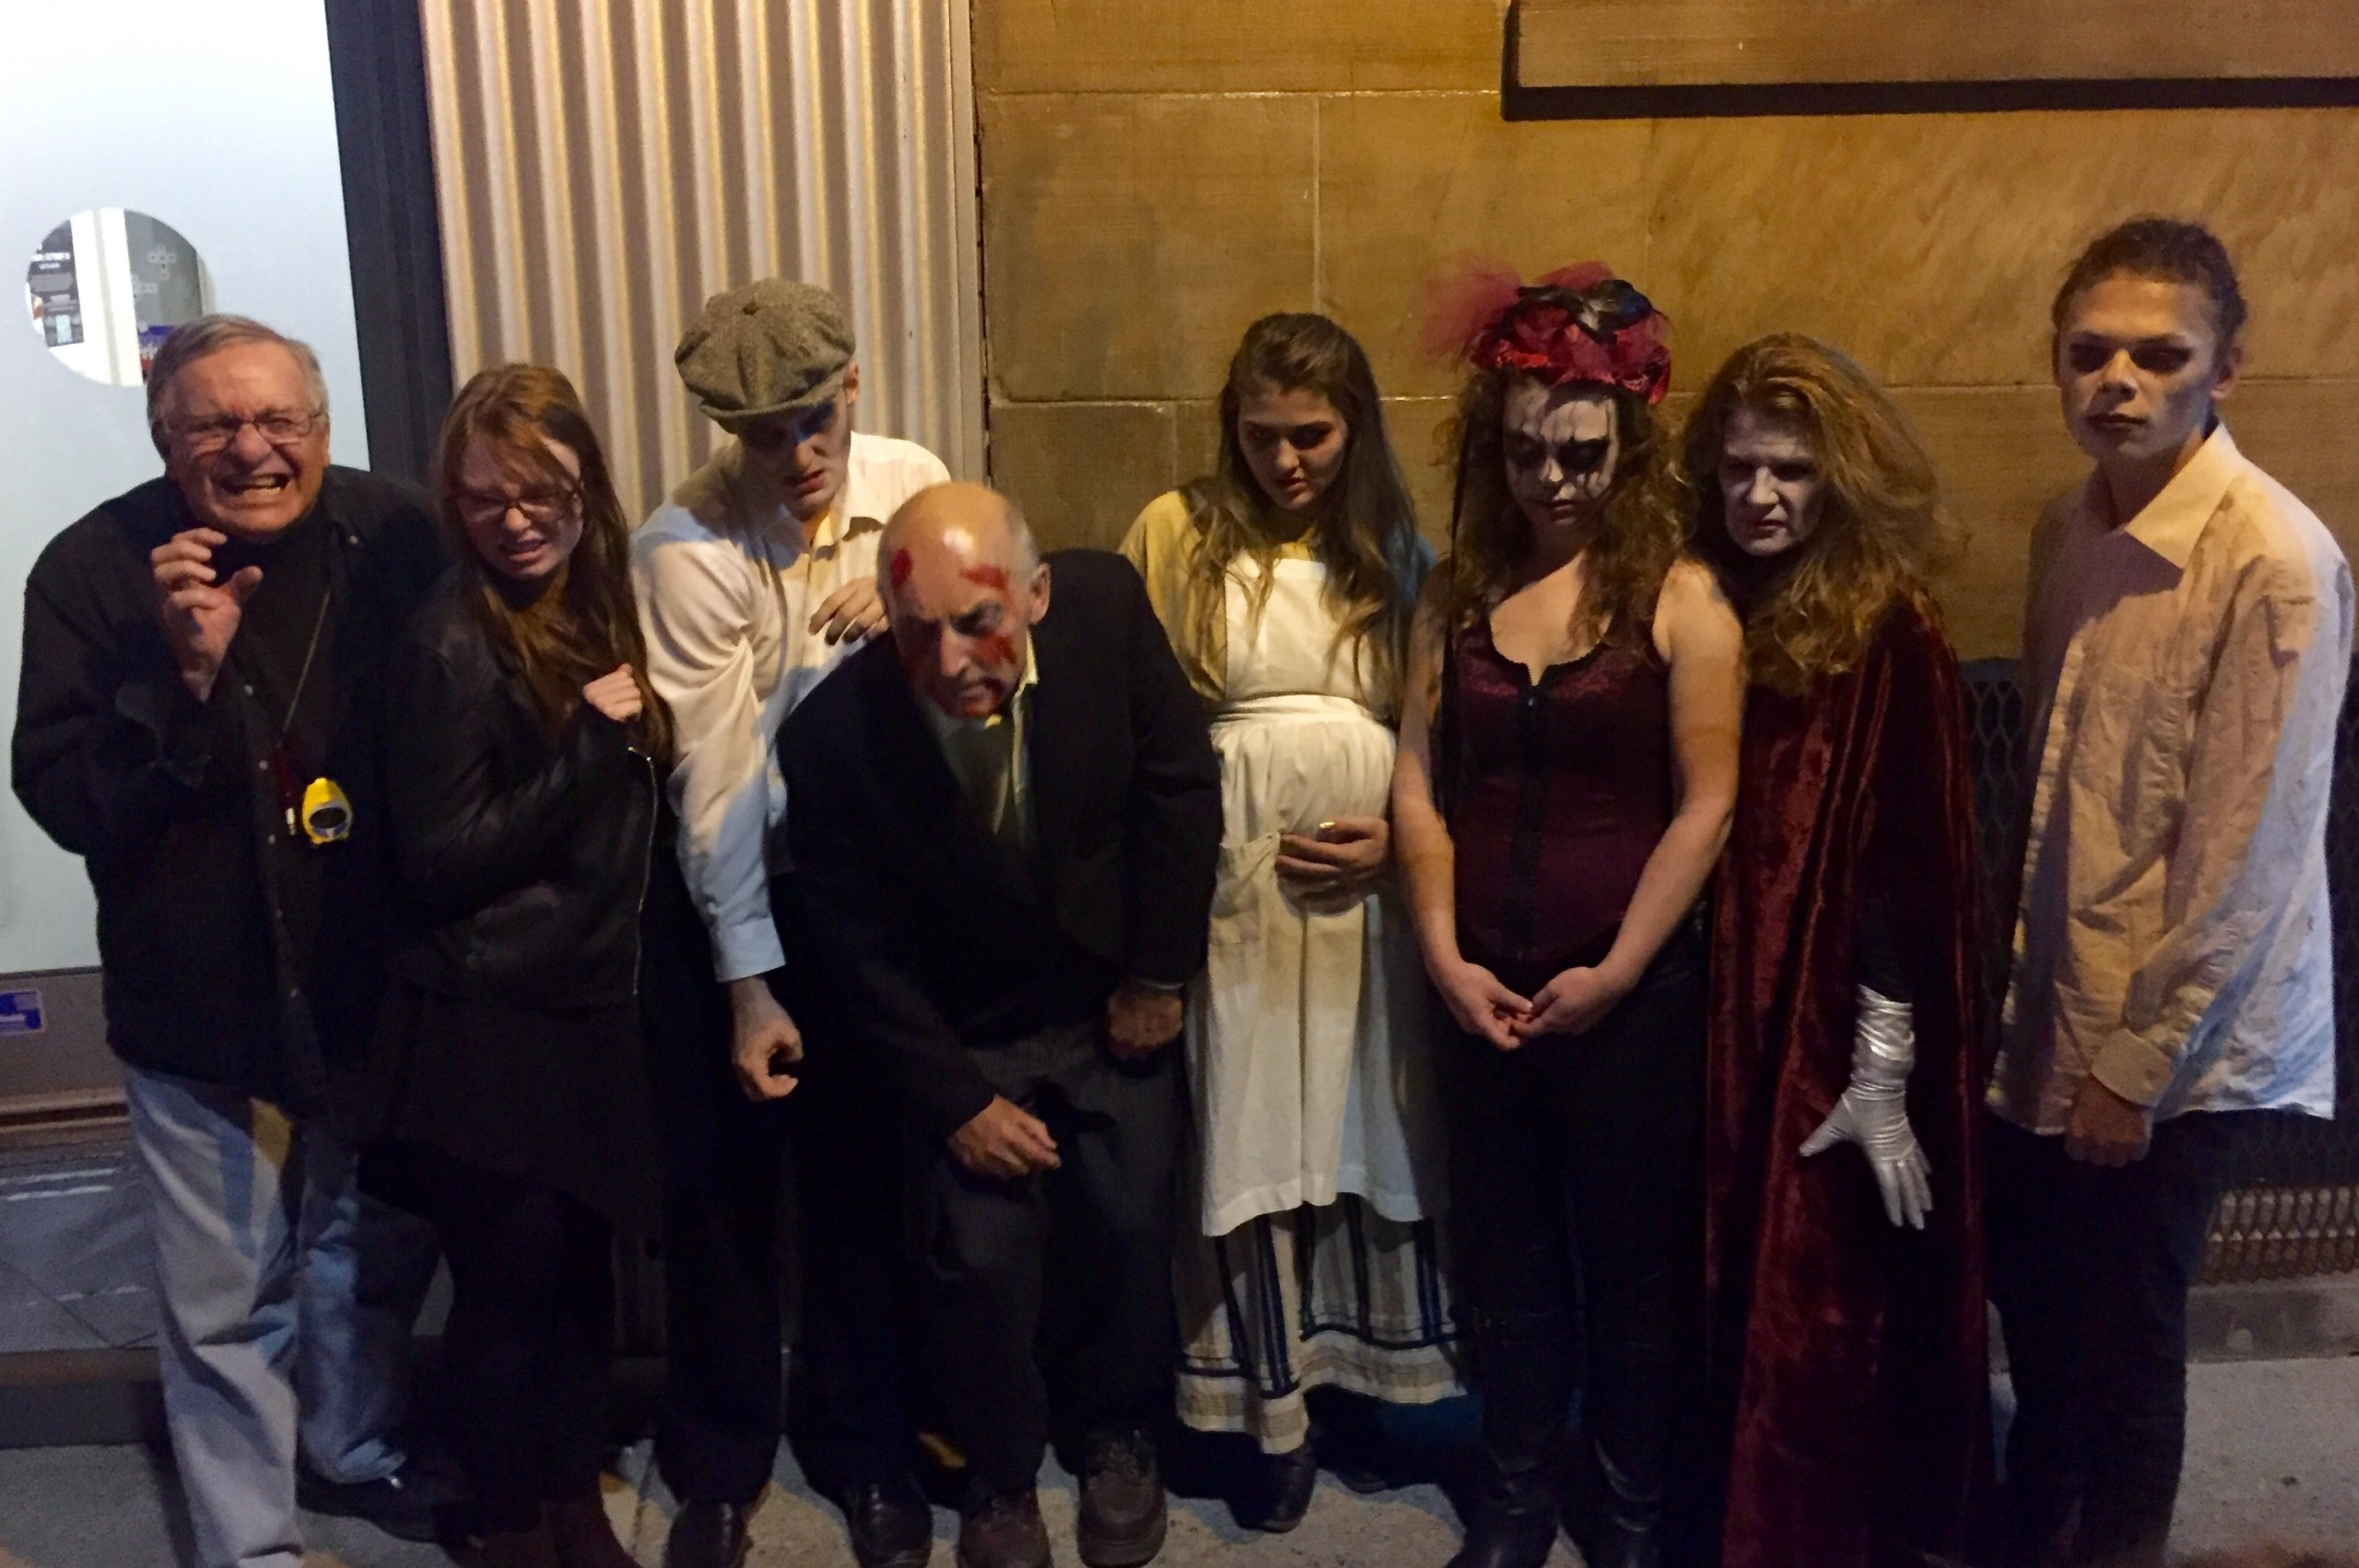 The Lost Soul Stroll is haunting the streets of downtown London